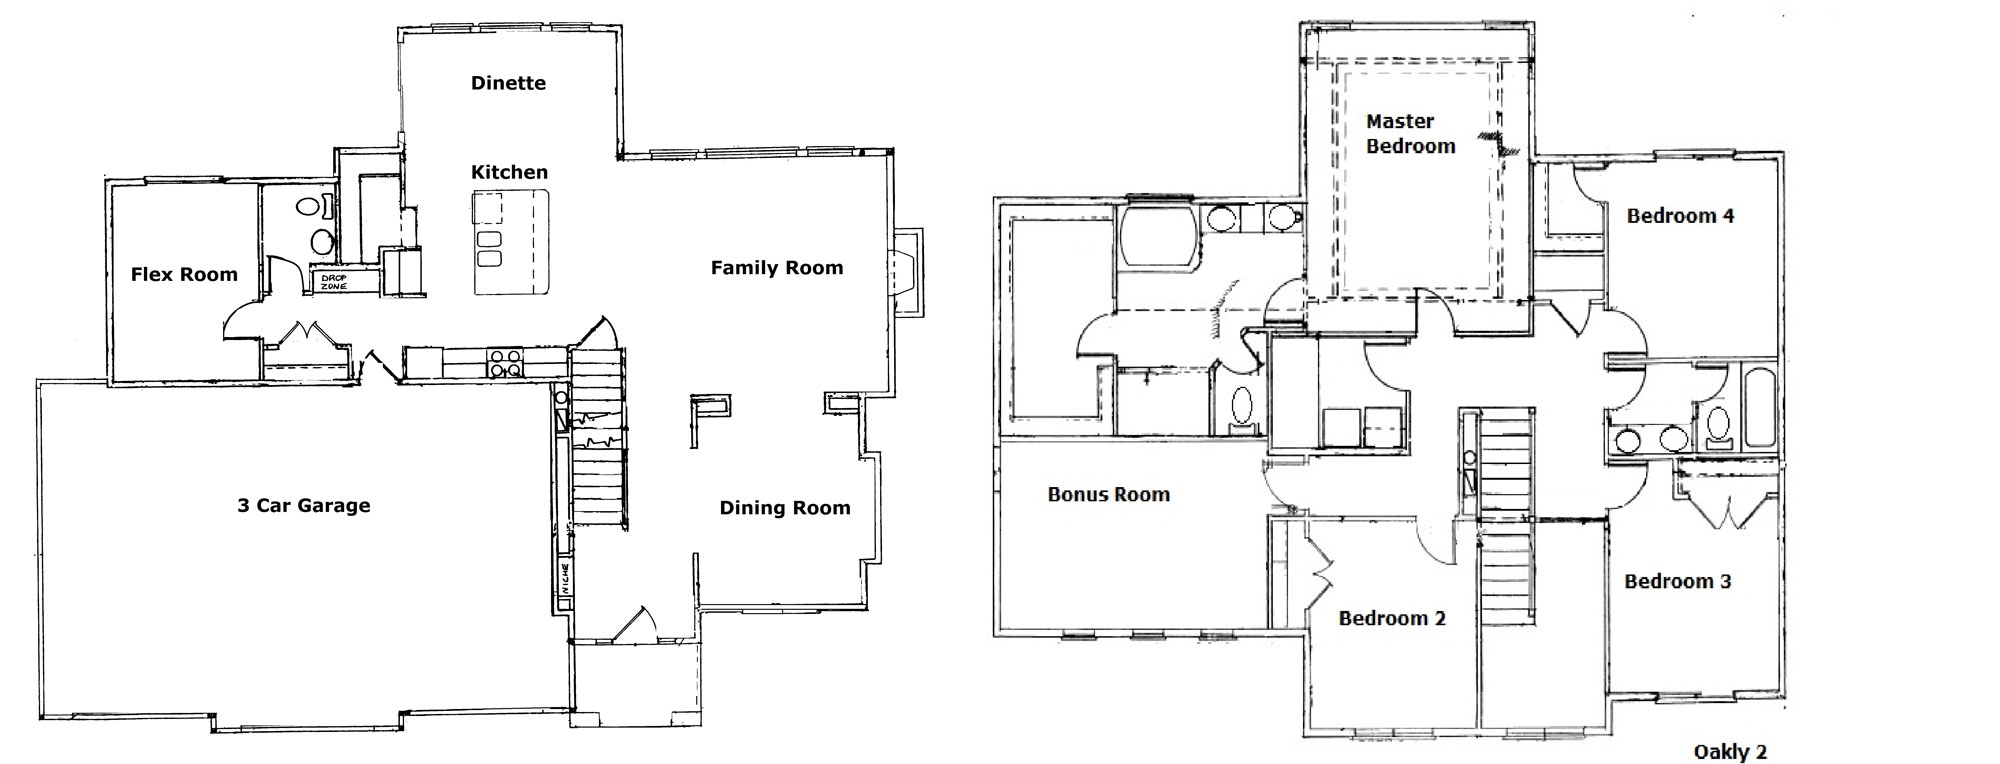 Floor plans timberline homes inc for Timberline homes floor plans